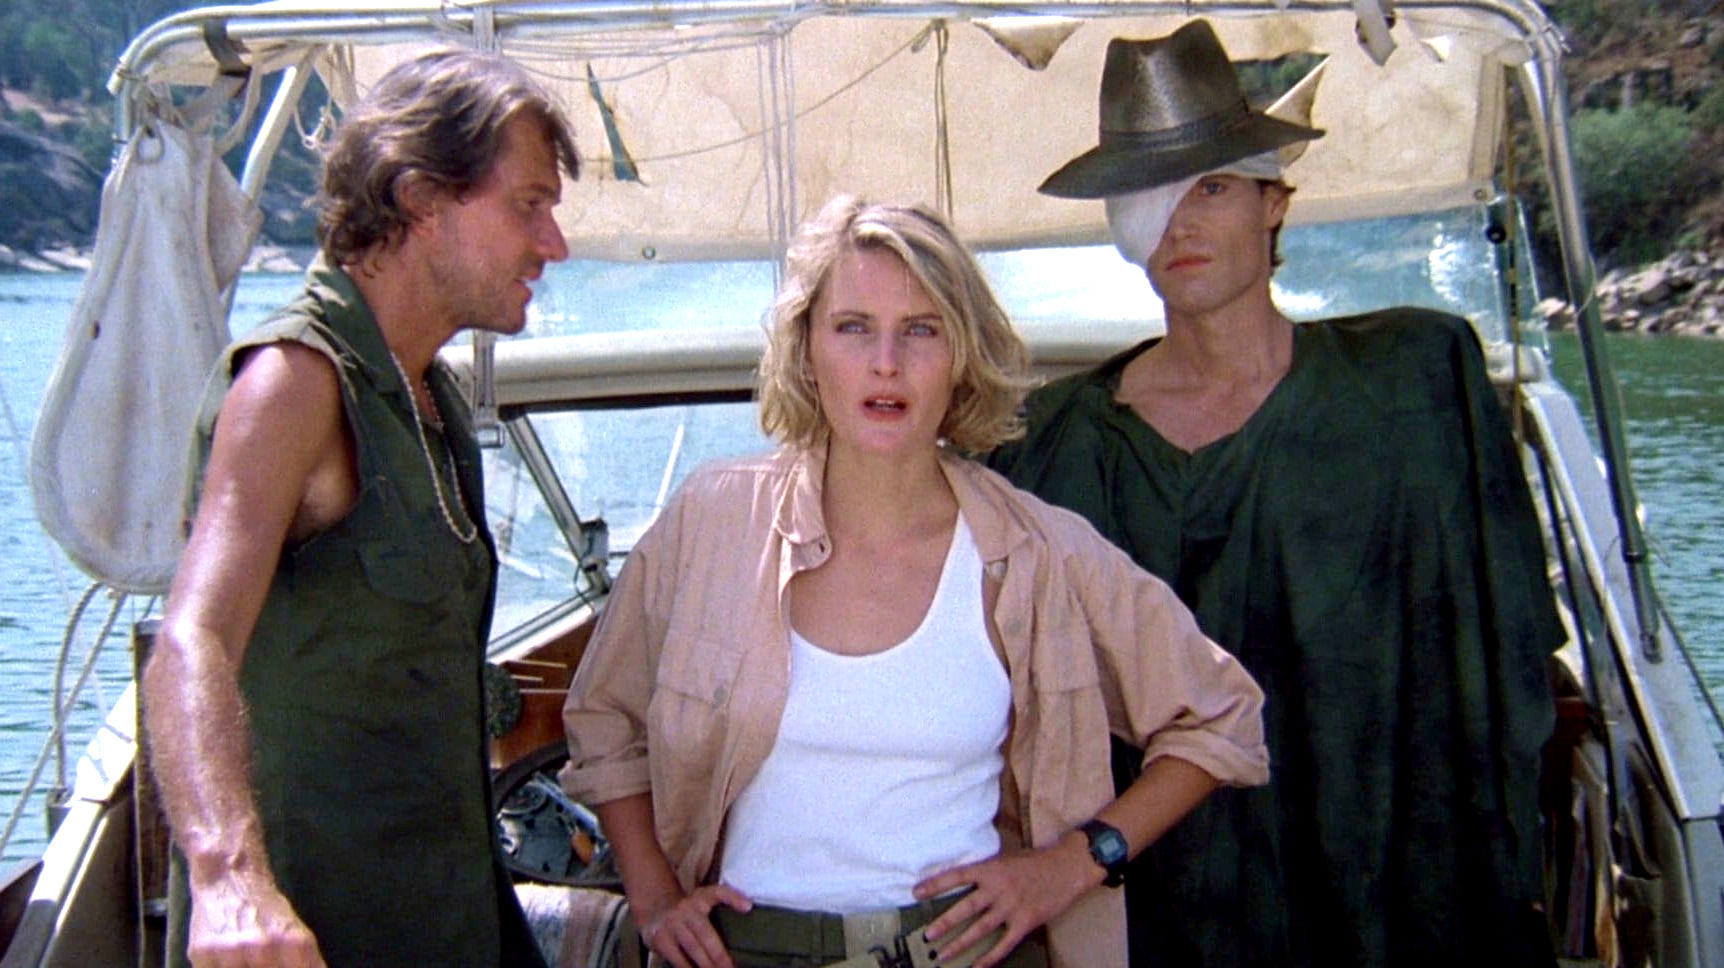 Boat captain Harry Fontana (Andrew Prine), roboticist Nora Hunter (Denise Crosby) and Mandroid (Patrick Reynolds) as the Eliminators (1986)